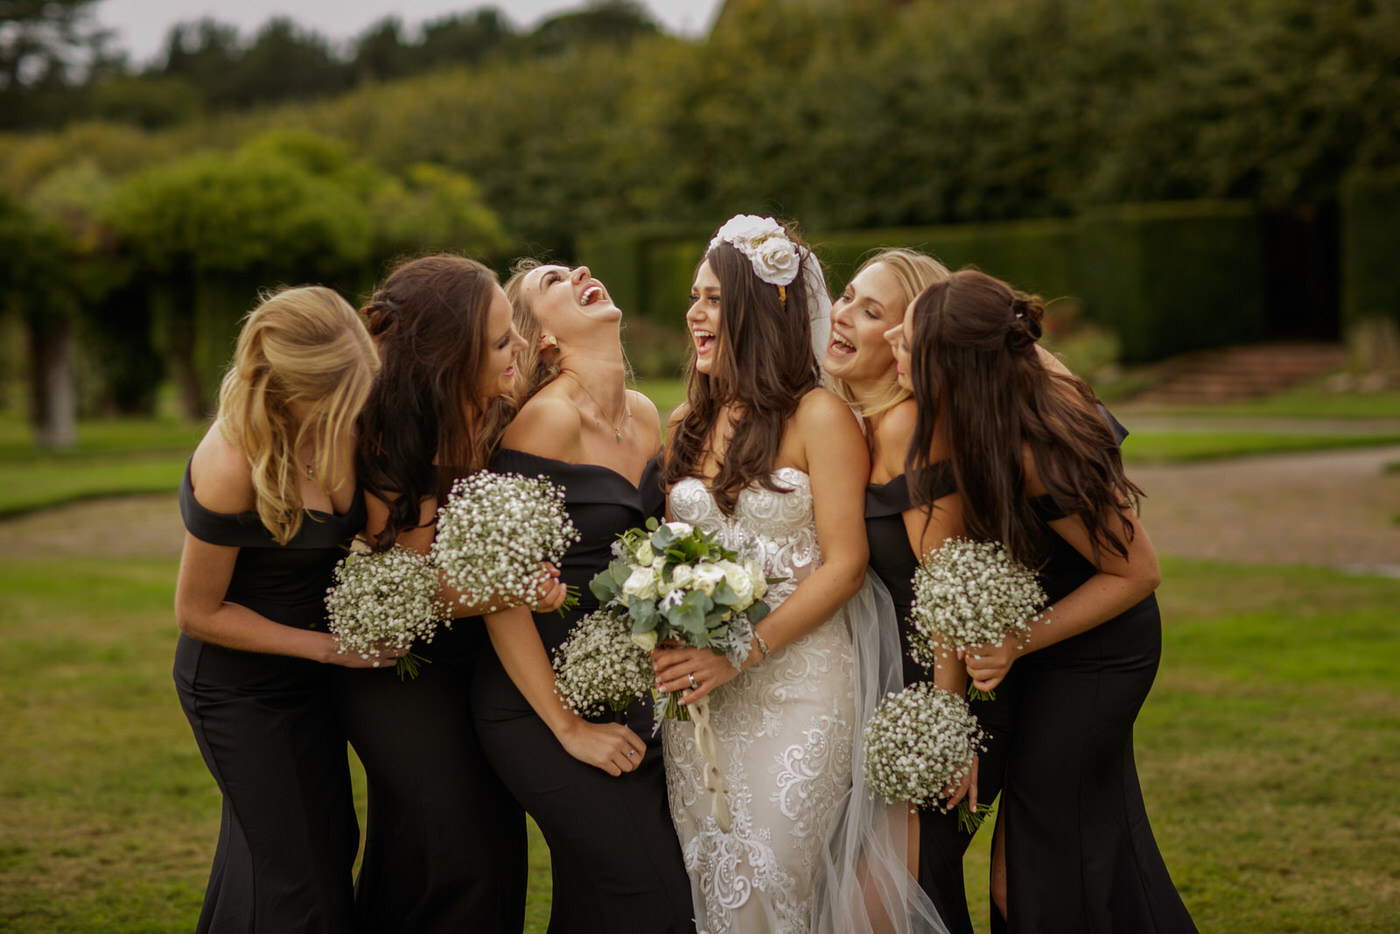 the bride and her bridesmaids enjoy a few moments of fun at the wedding reception